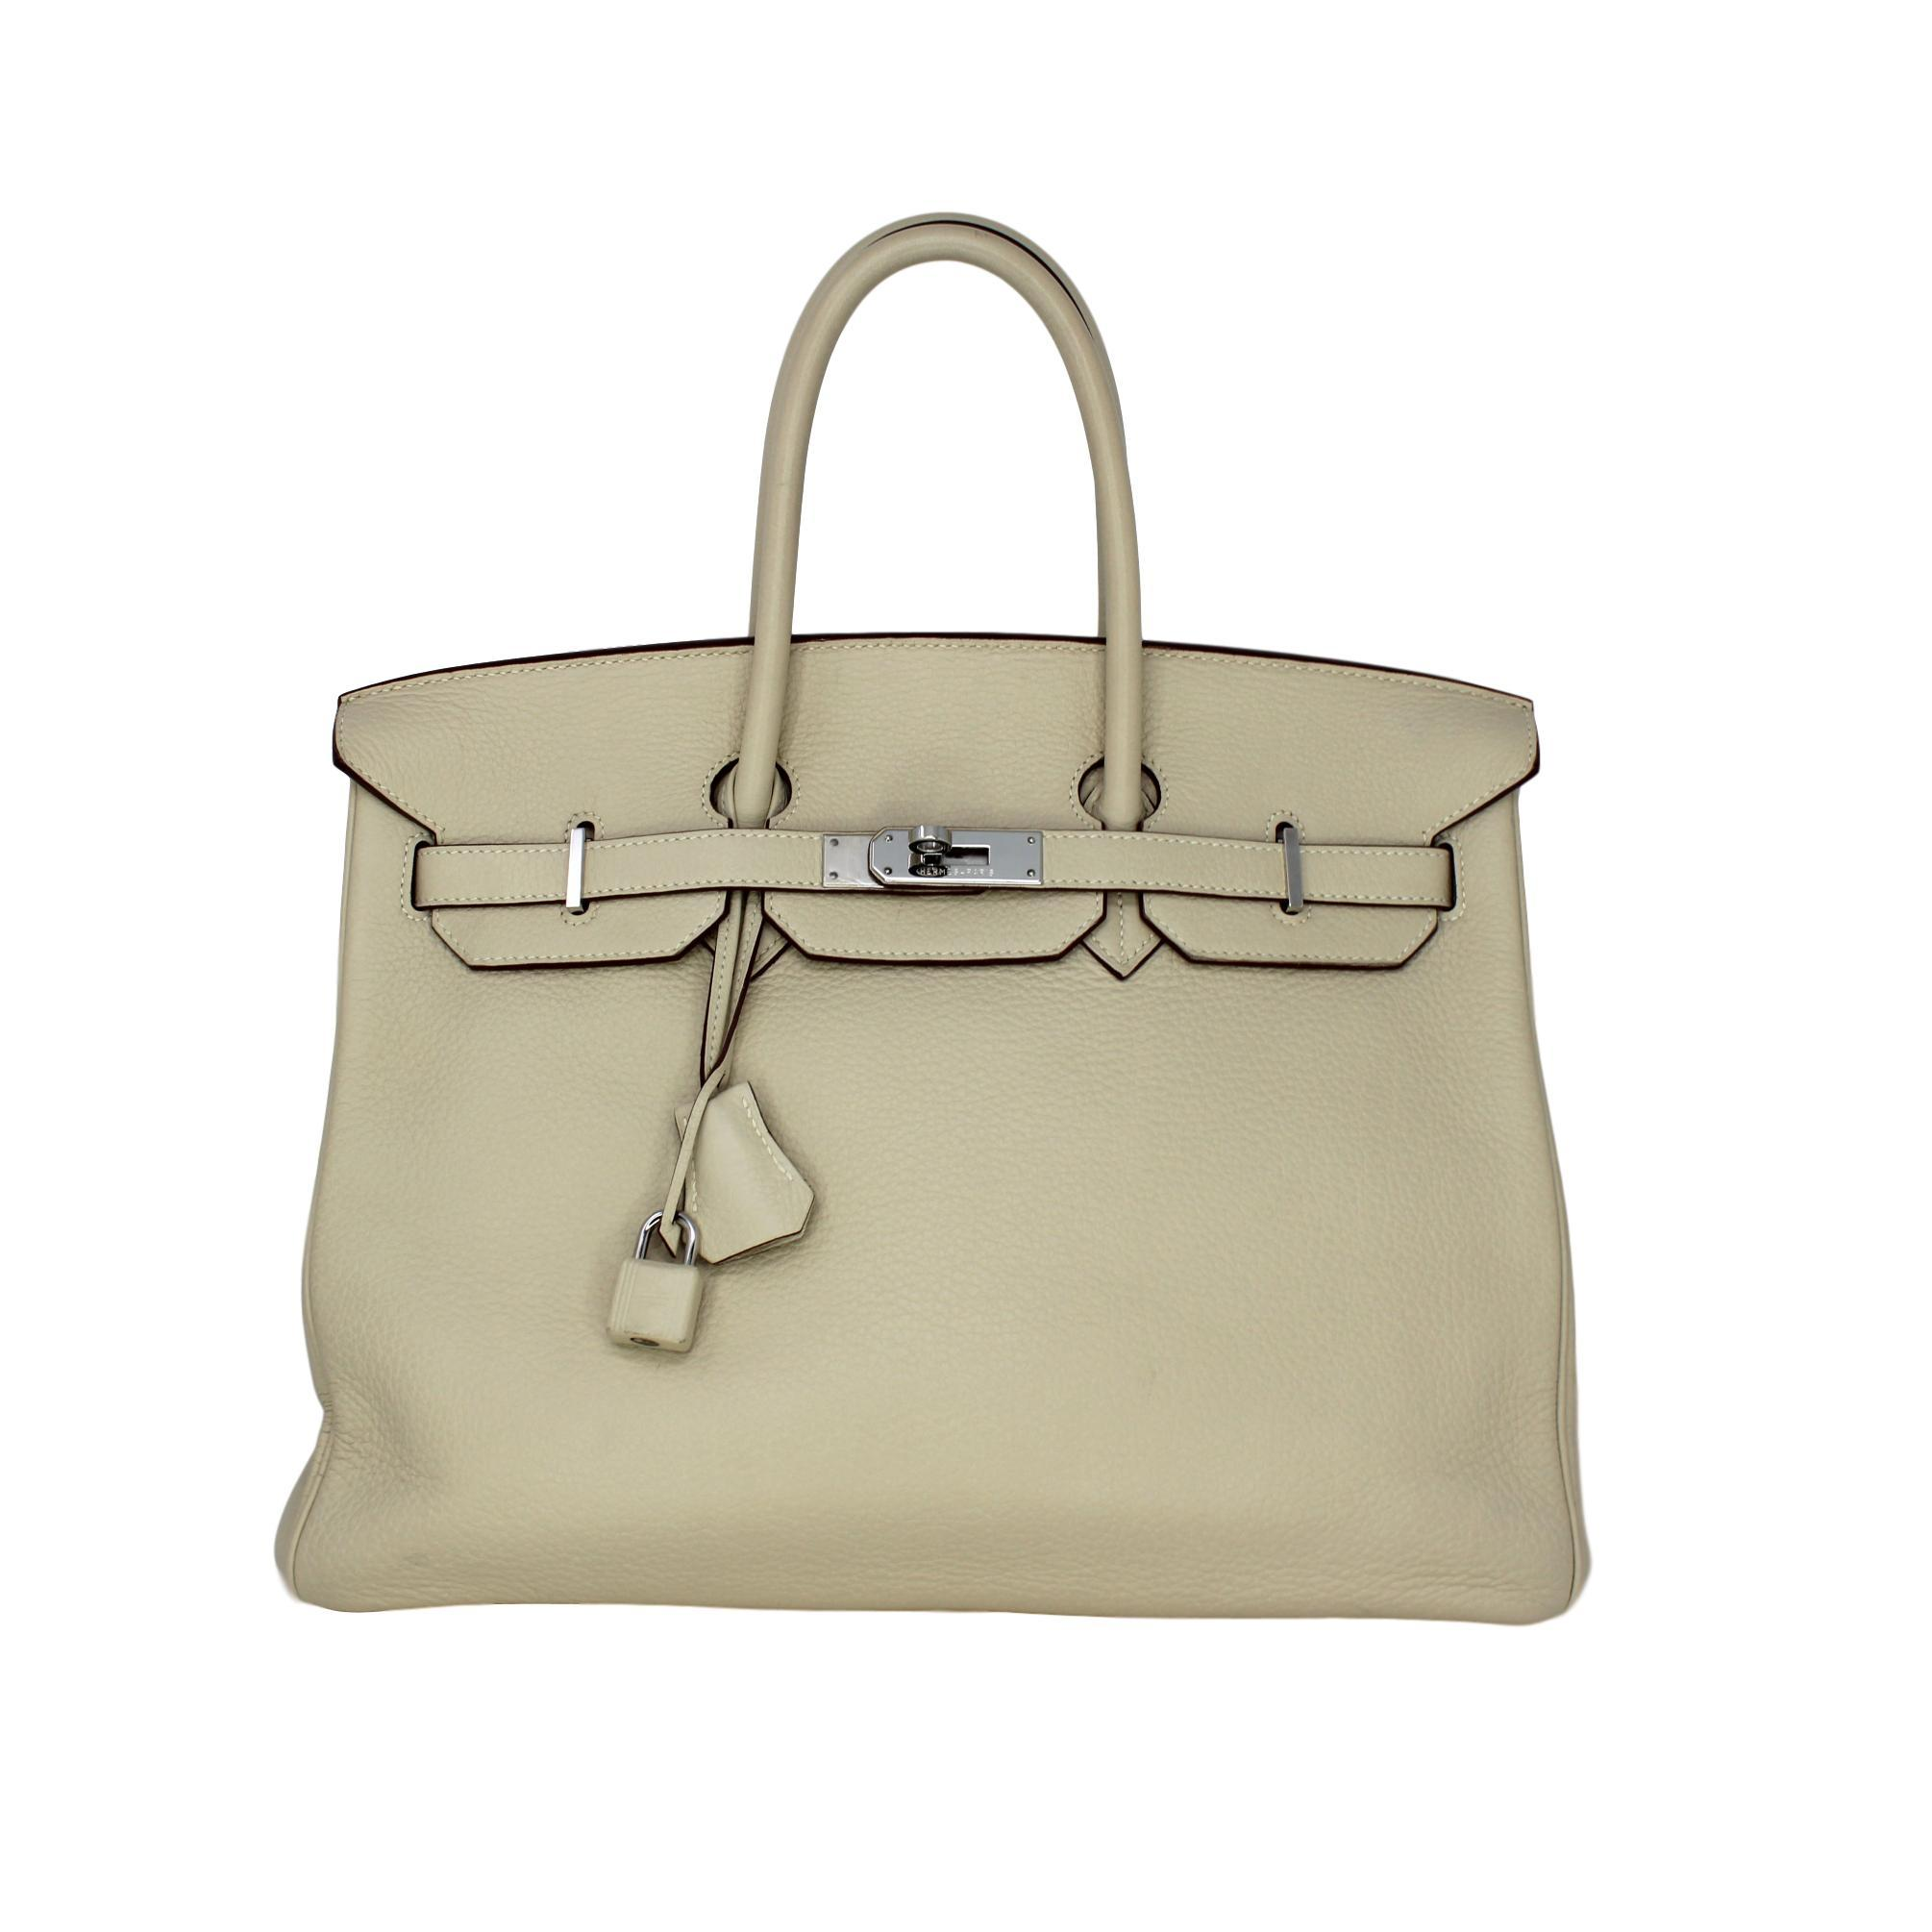 07e49acb7a0 ... 50% off hermès birkin 35 white cream travel bag a1b45 91bde